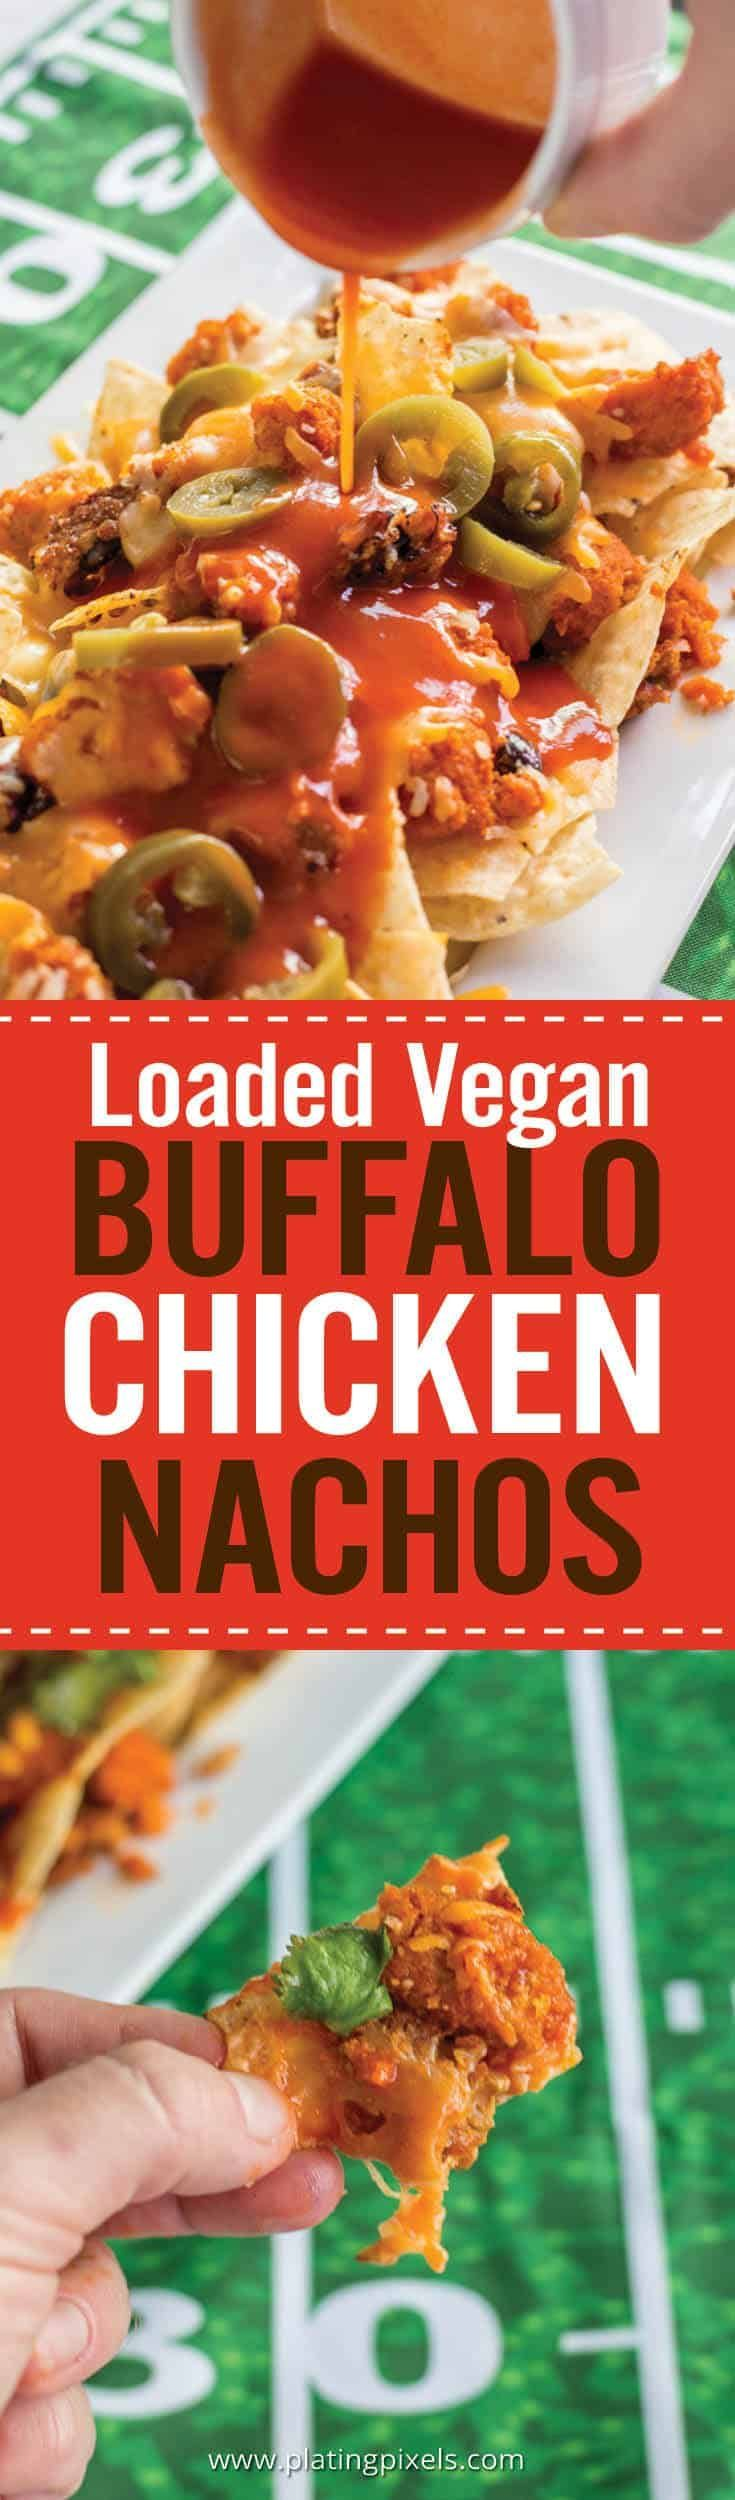 Quick and easy Loaded Vegan Buffalo Chicken Nachos to go with your football party appetizers. Vegan chicken with buffalo sauce, black beans, vegan cheese, cilantro, and jalapenos over tortilla chips. #superbowl #superbowlappetizer #nacos #vegan #vegansuperbowl #buffalosauce - platingpixels.com